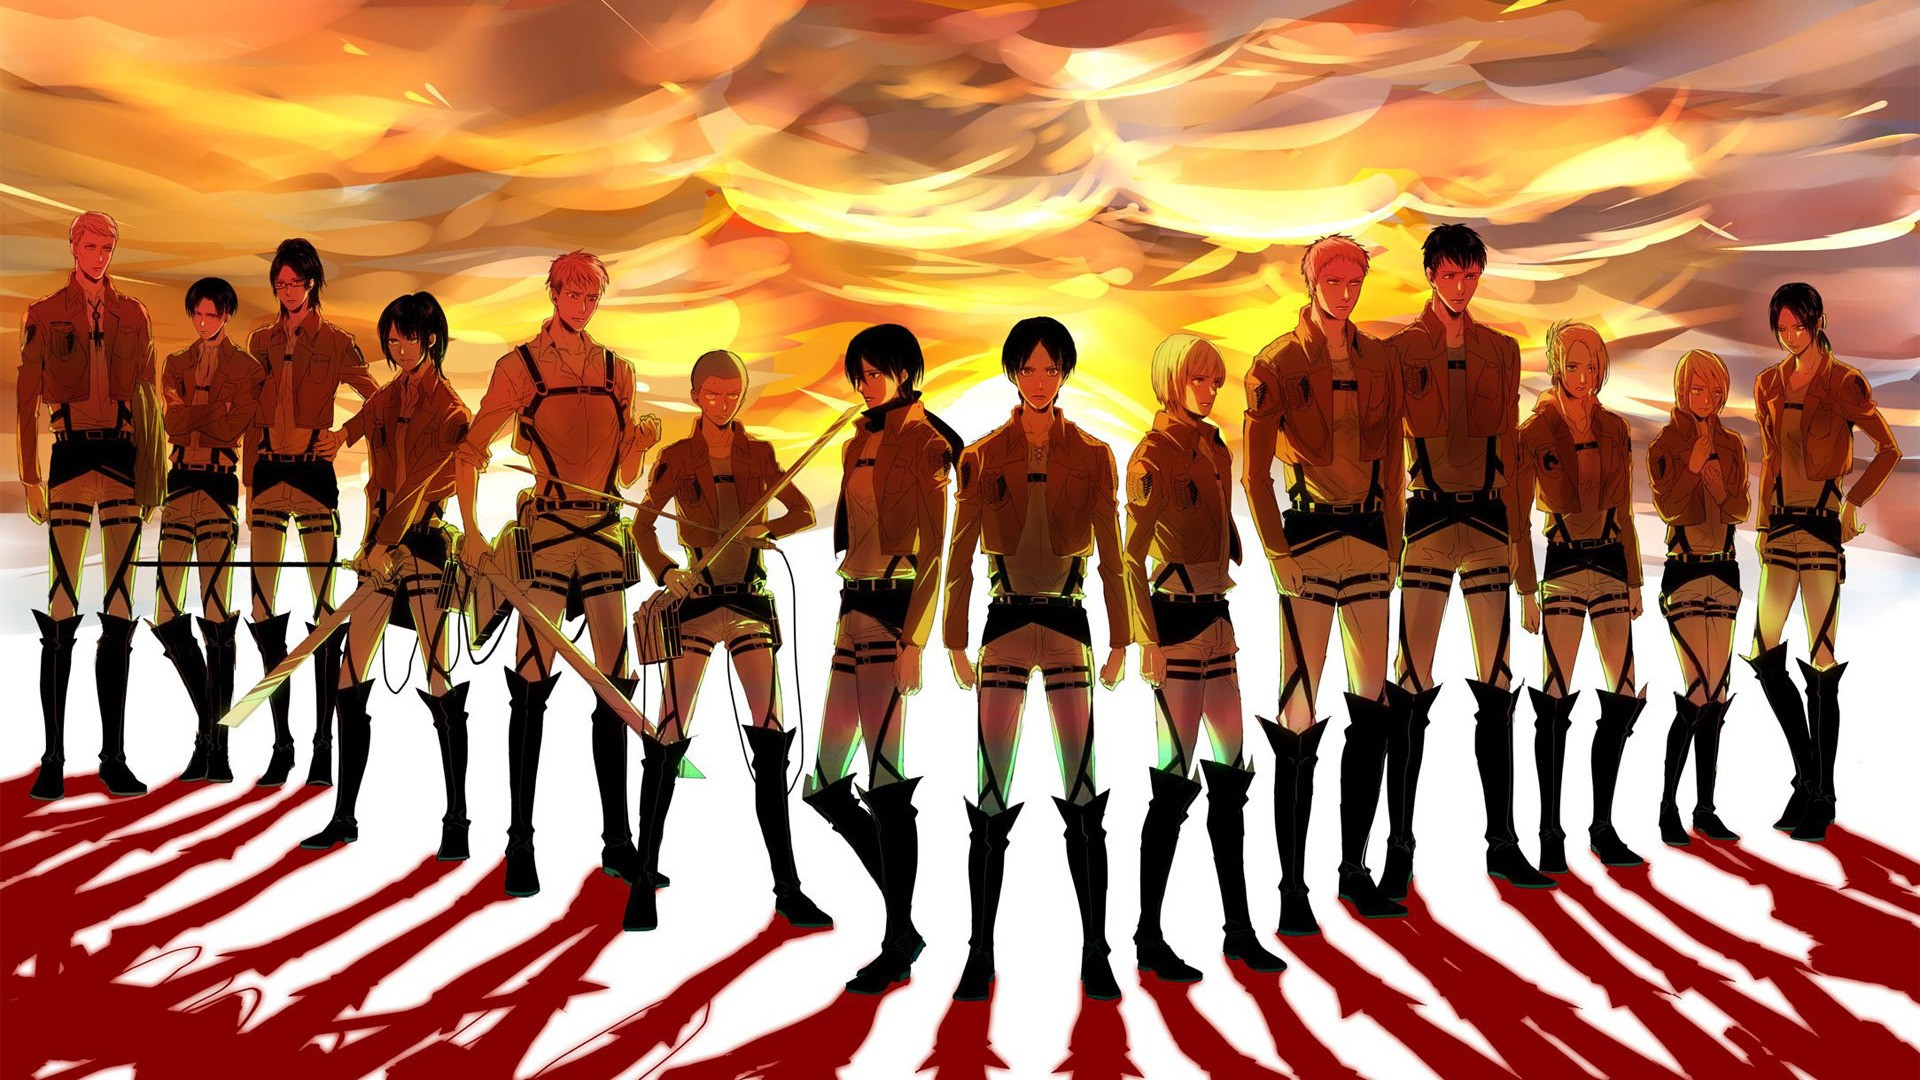 Download Wallpaper From Anime Attack On Titan With Tags Eren